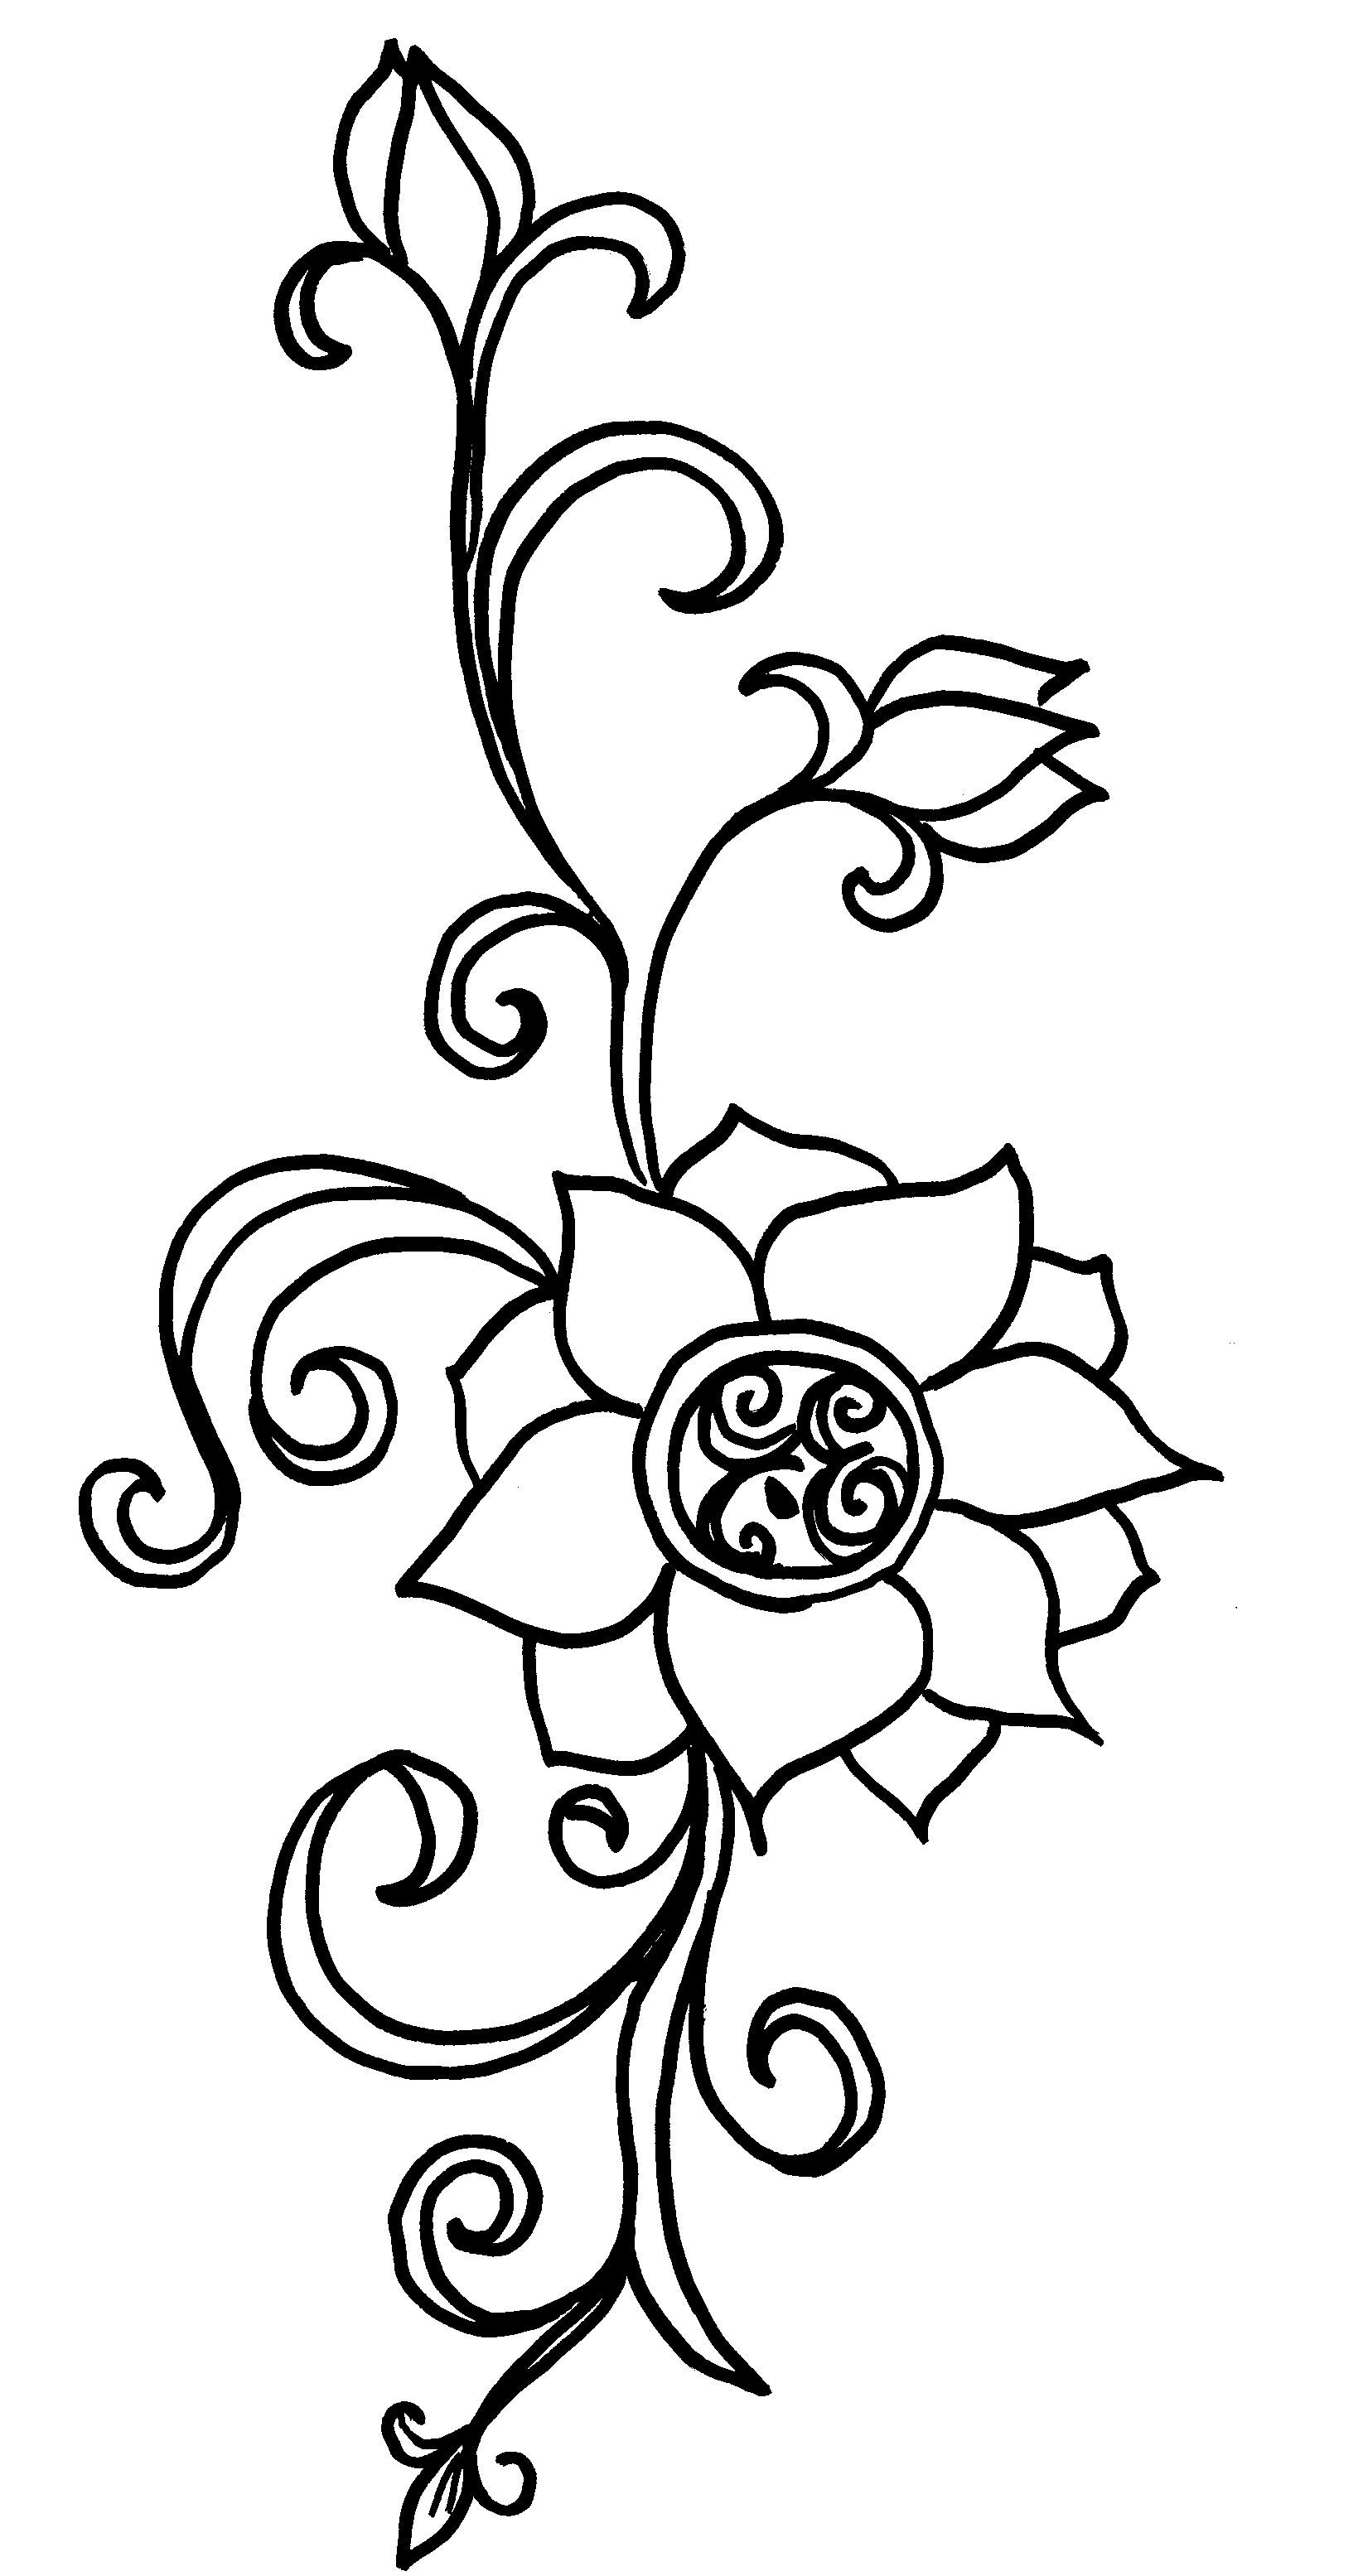 Image Of Lotis Flower Drawing Henna Inspired Design Ideas Fabic